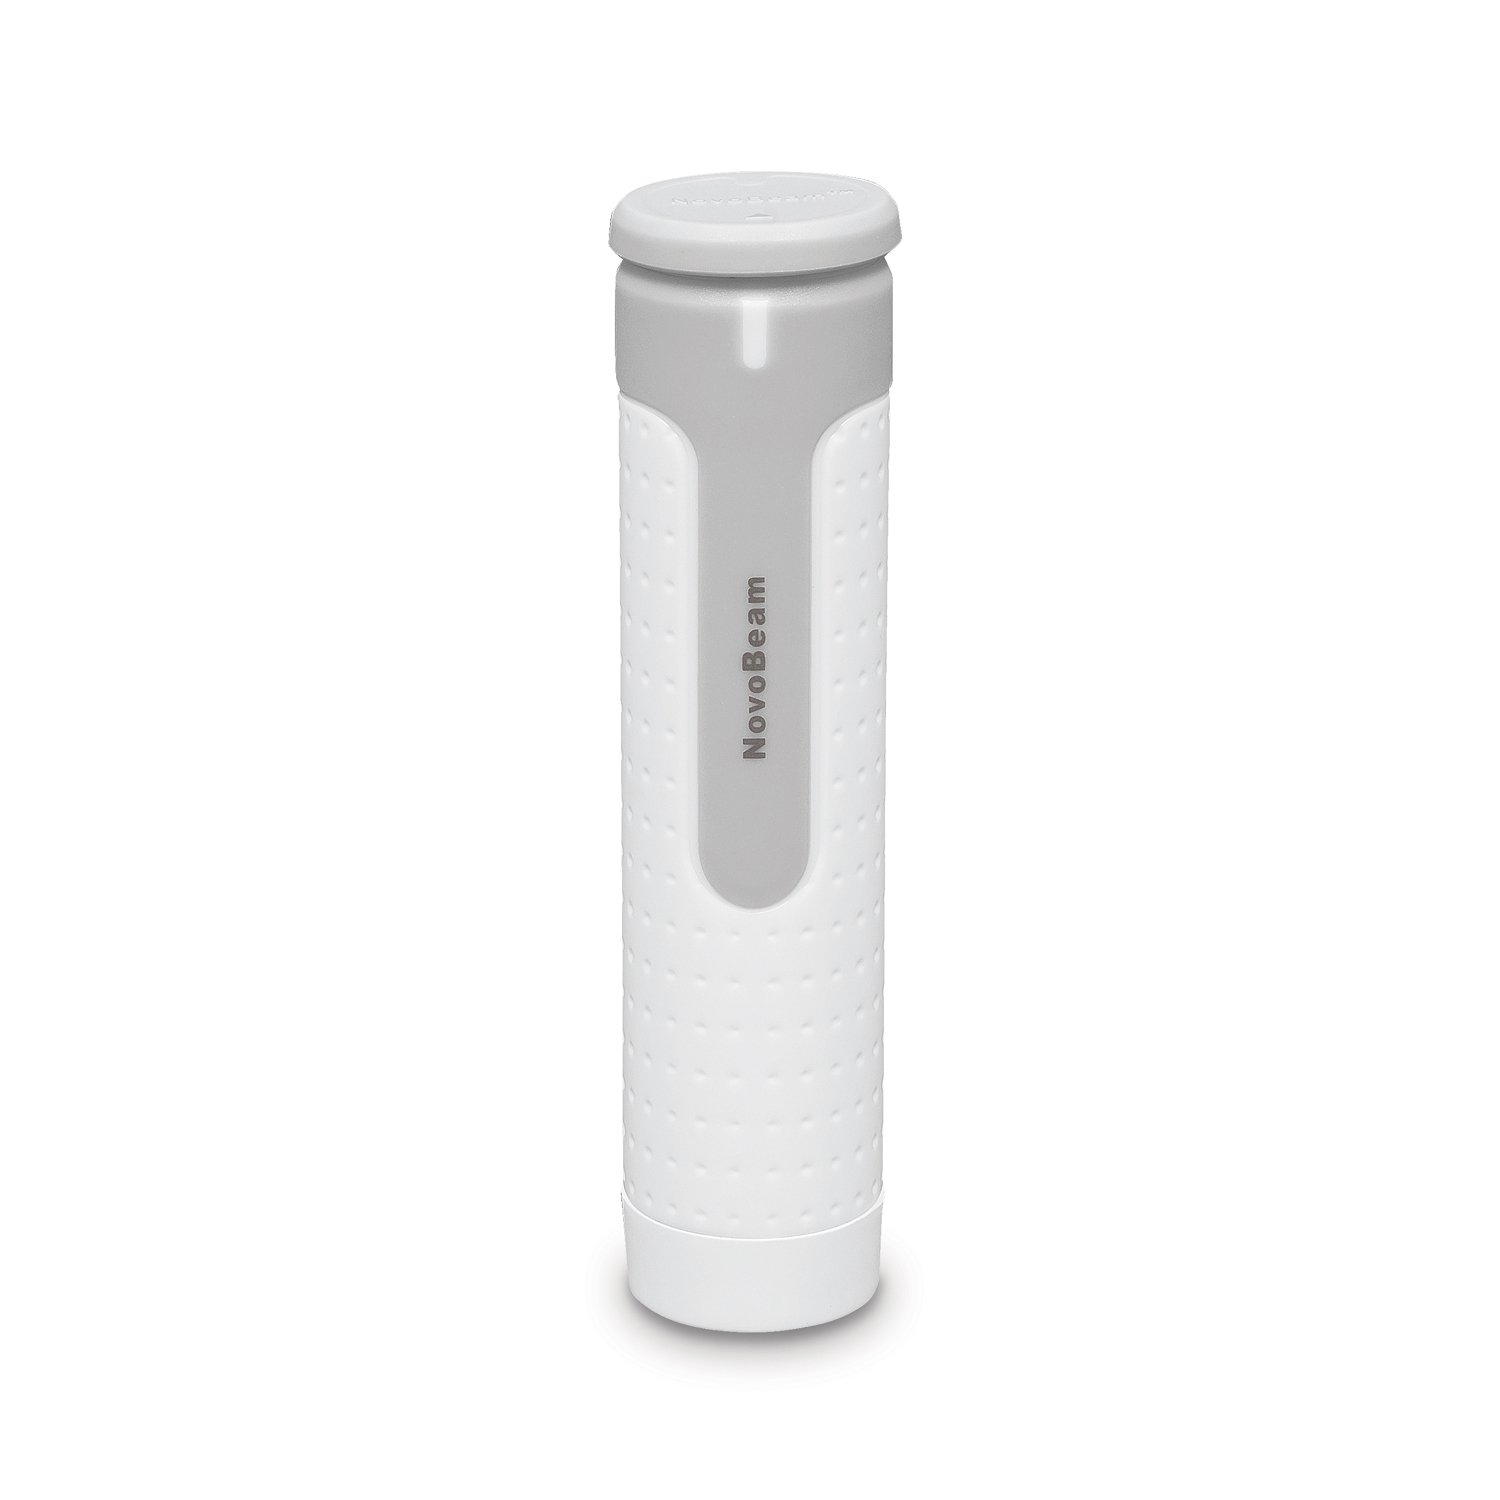 Novobeam NBP3000 Ultra-Compact Waterproof/Dustproof Portable USB External Battery Pack Charger/Power Bank, 3,000 mAh, Compatible with most Smartphones and other USB Powered Devices Instapark NBP3000-WHT